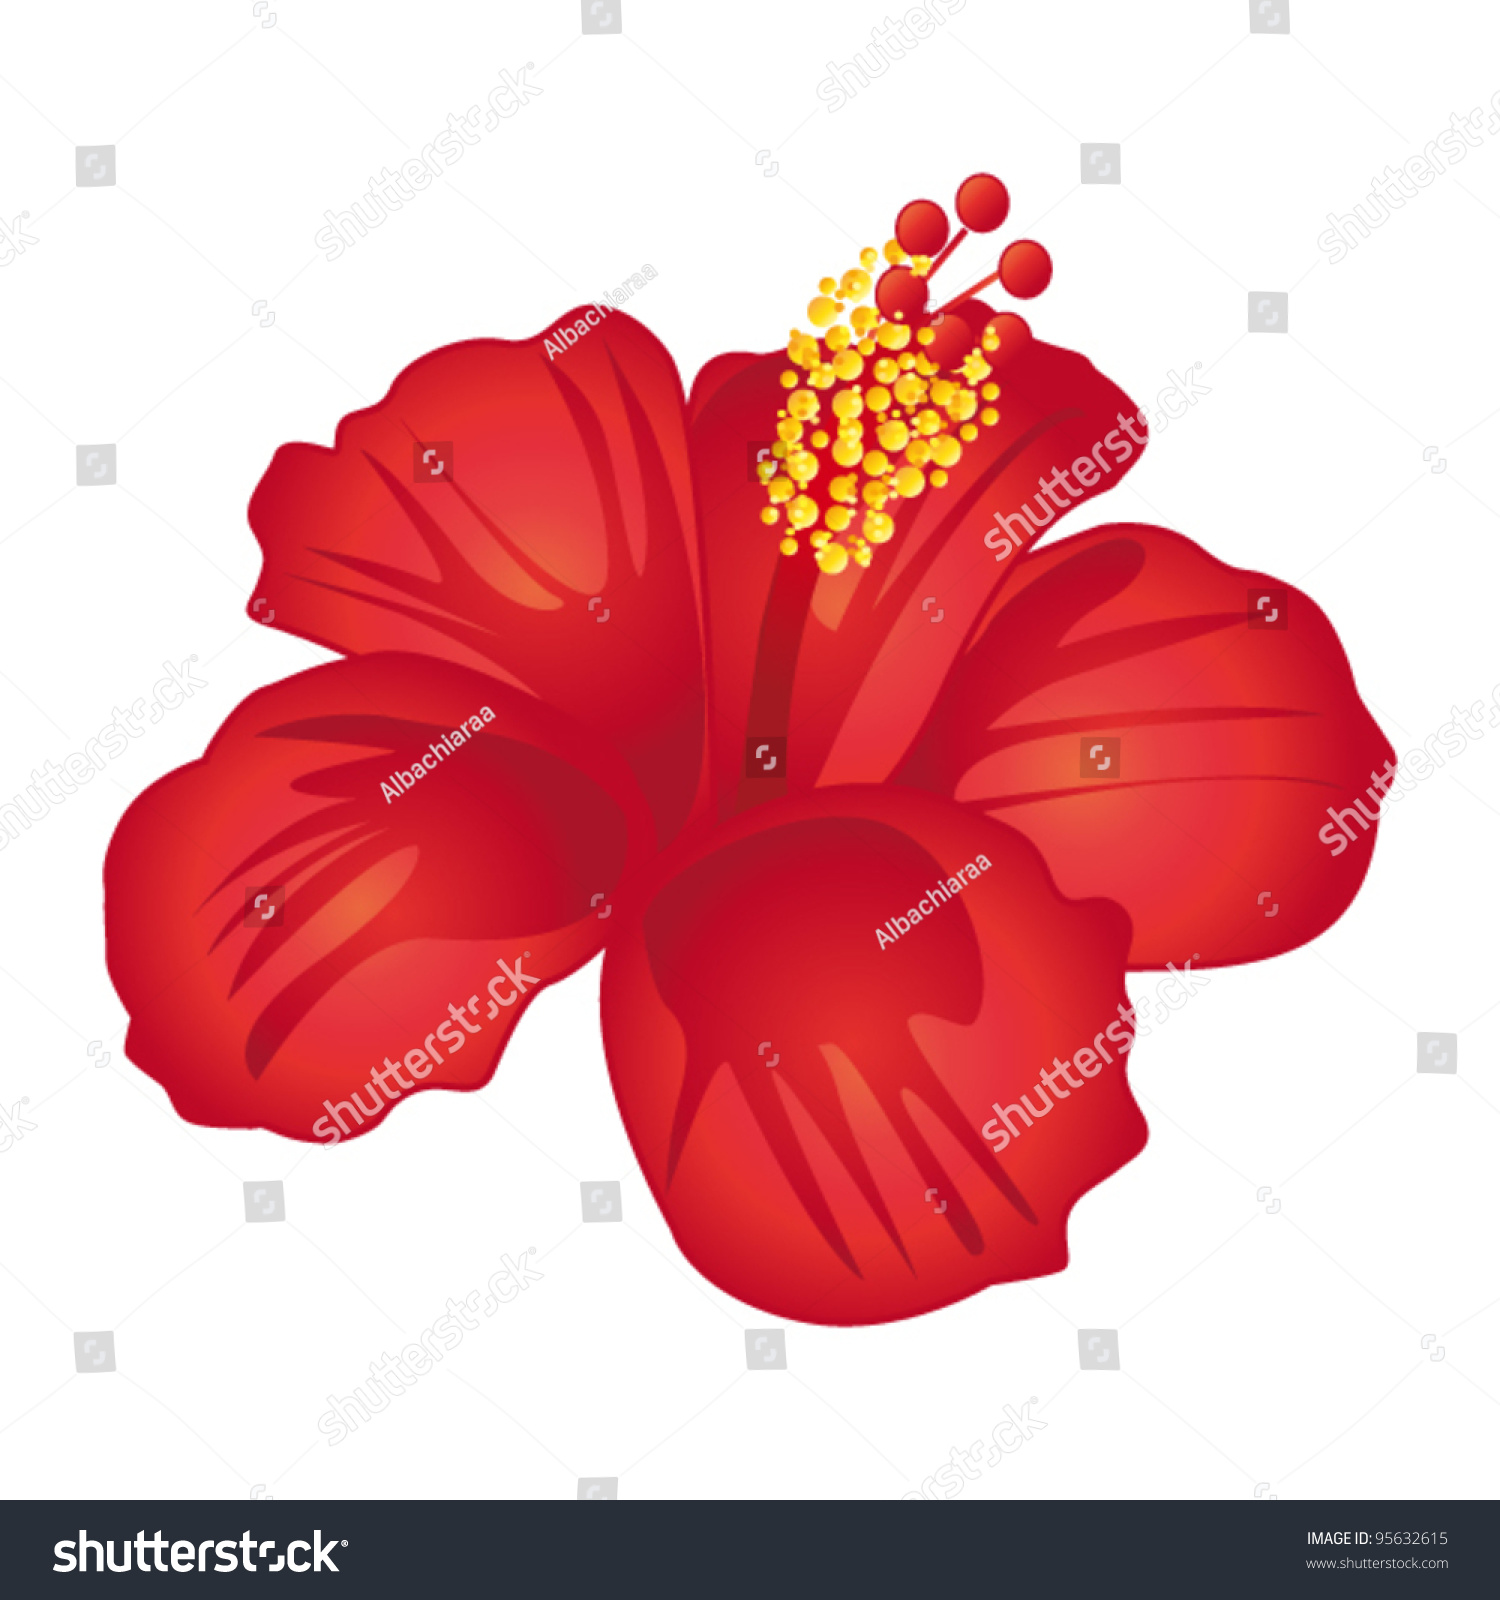 Beautiful red hibiscus flower vector illustration stock vector beautiful red hibiscus flower vector illustration stock vector 95632615 shutterstock izmirmasajfo